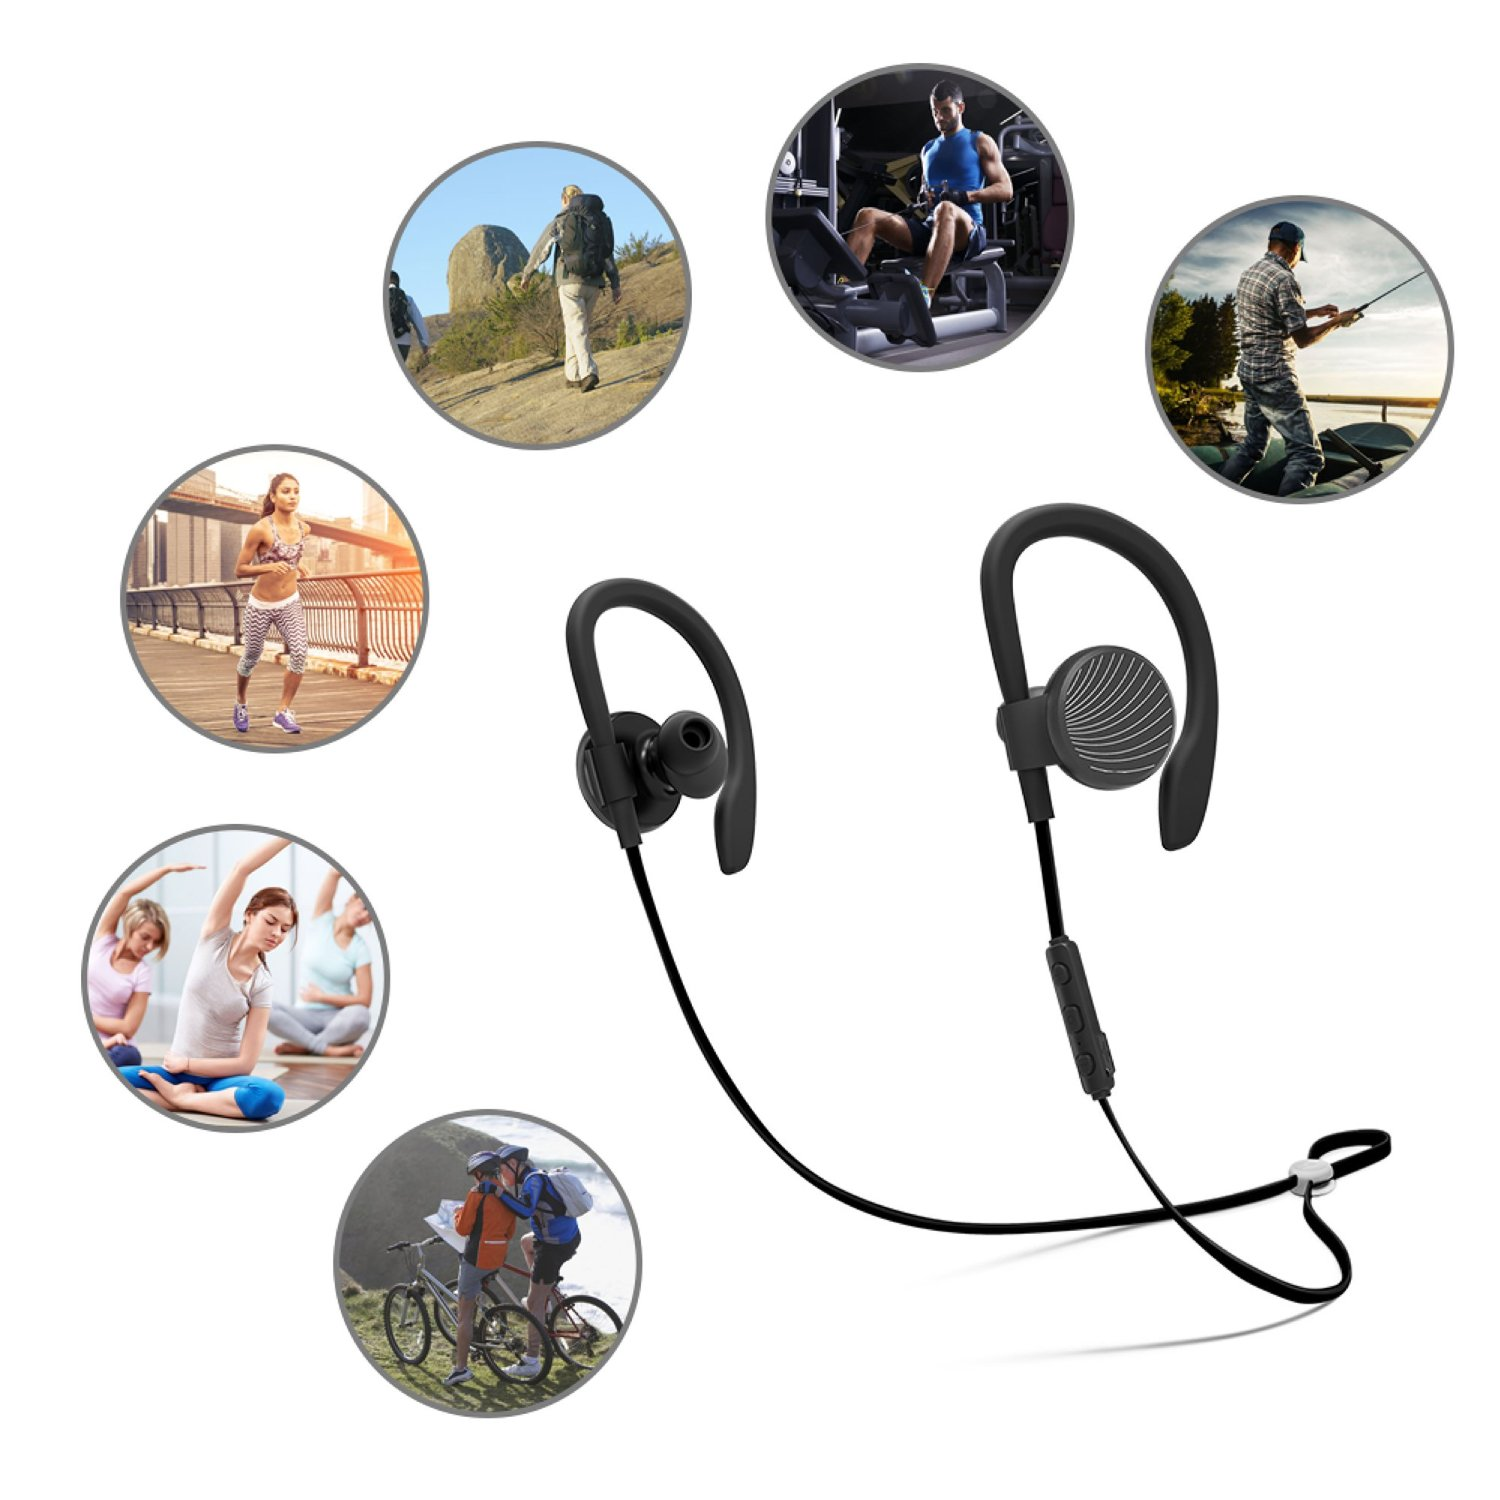 Thinking Sports & Music ? Think Cambond! Bluetooth 4.1 headphones for Running #ProductReview